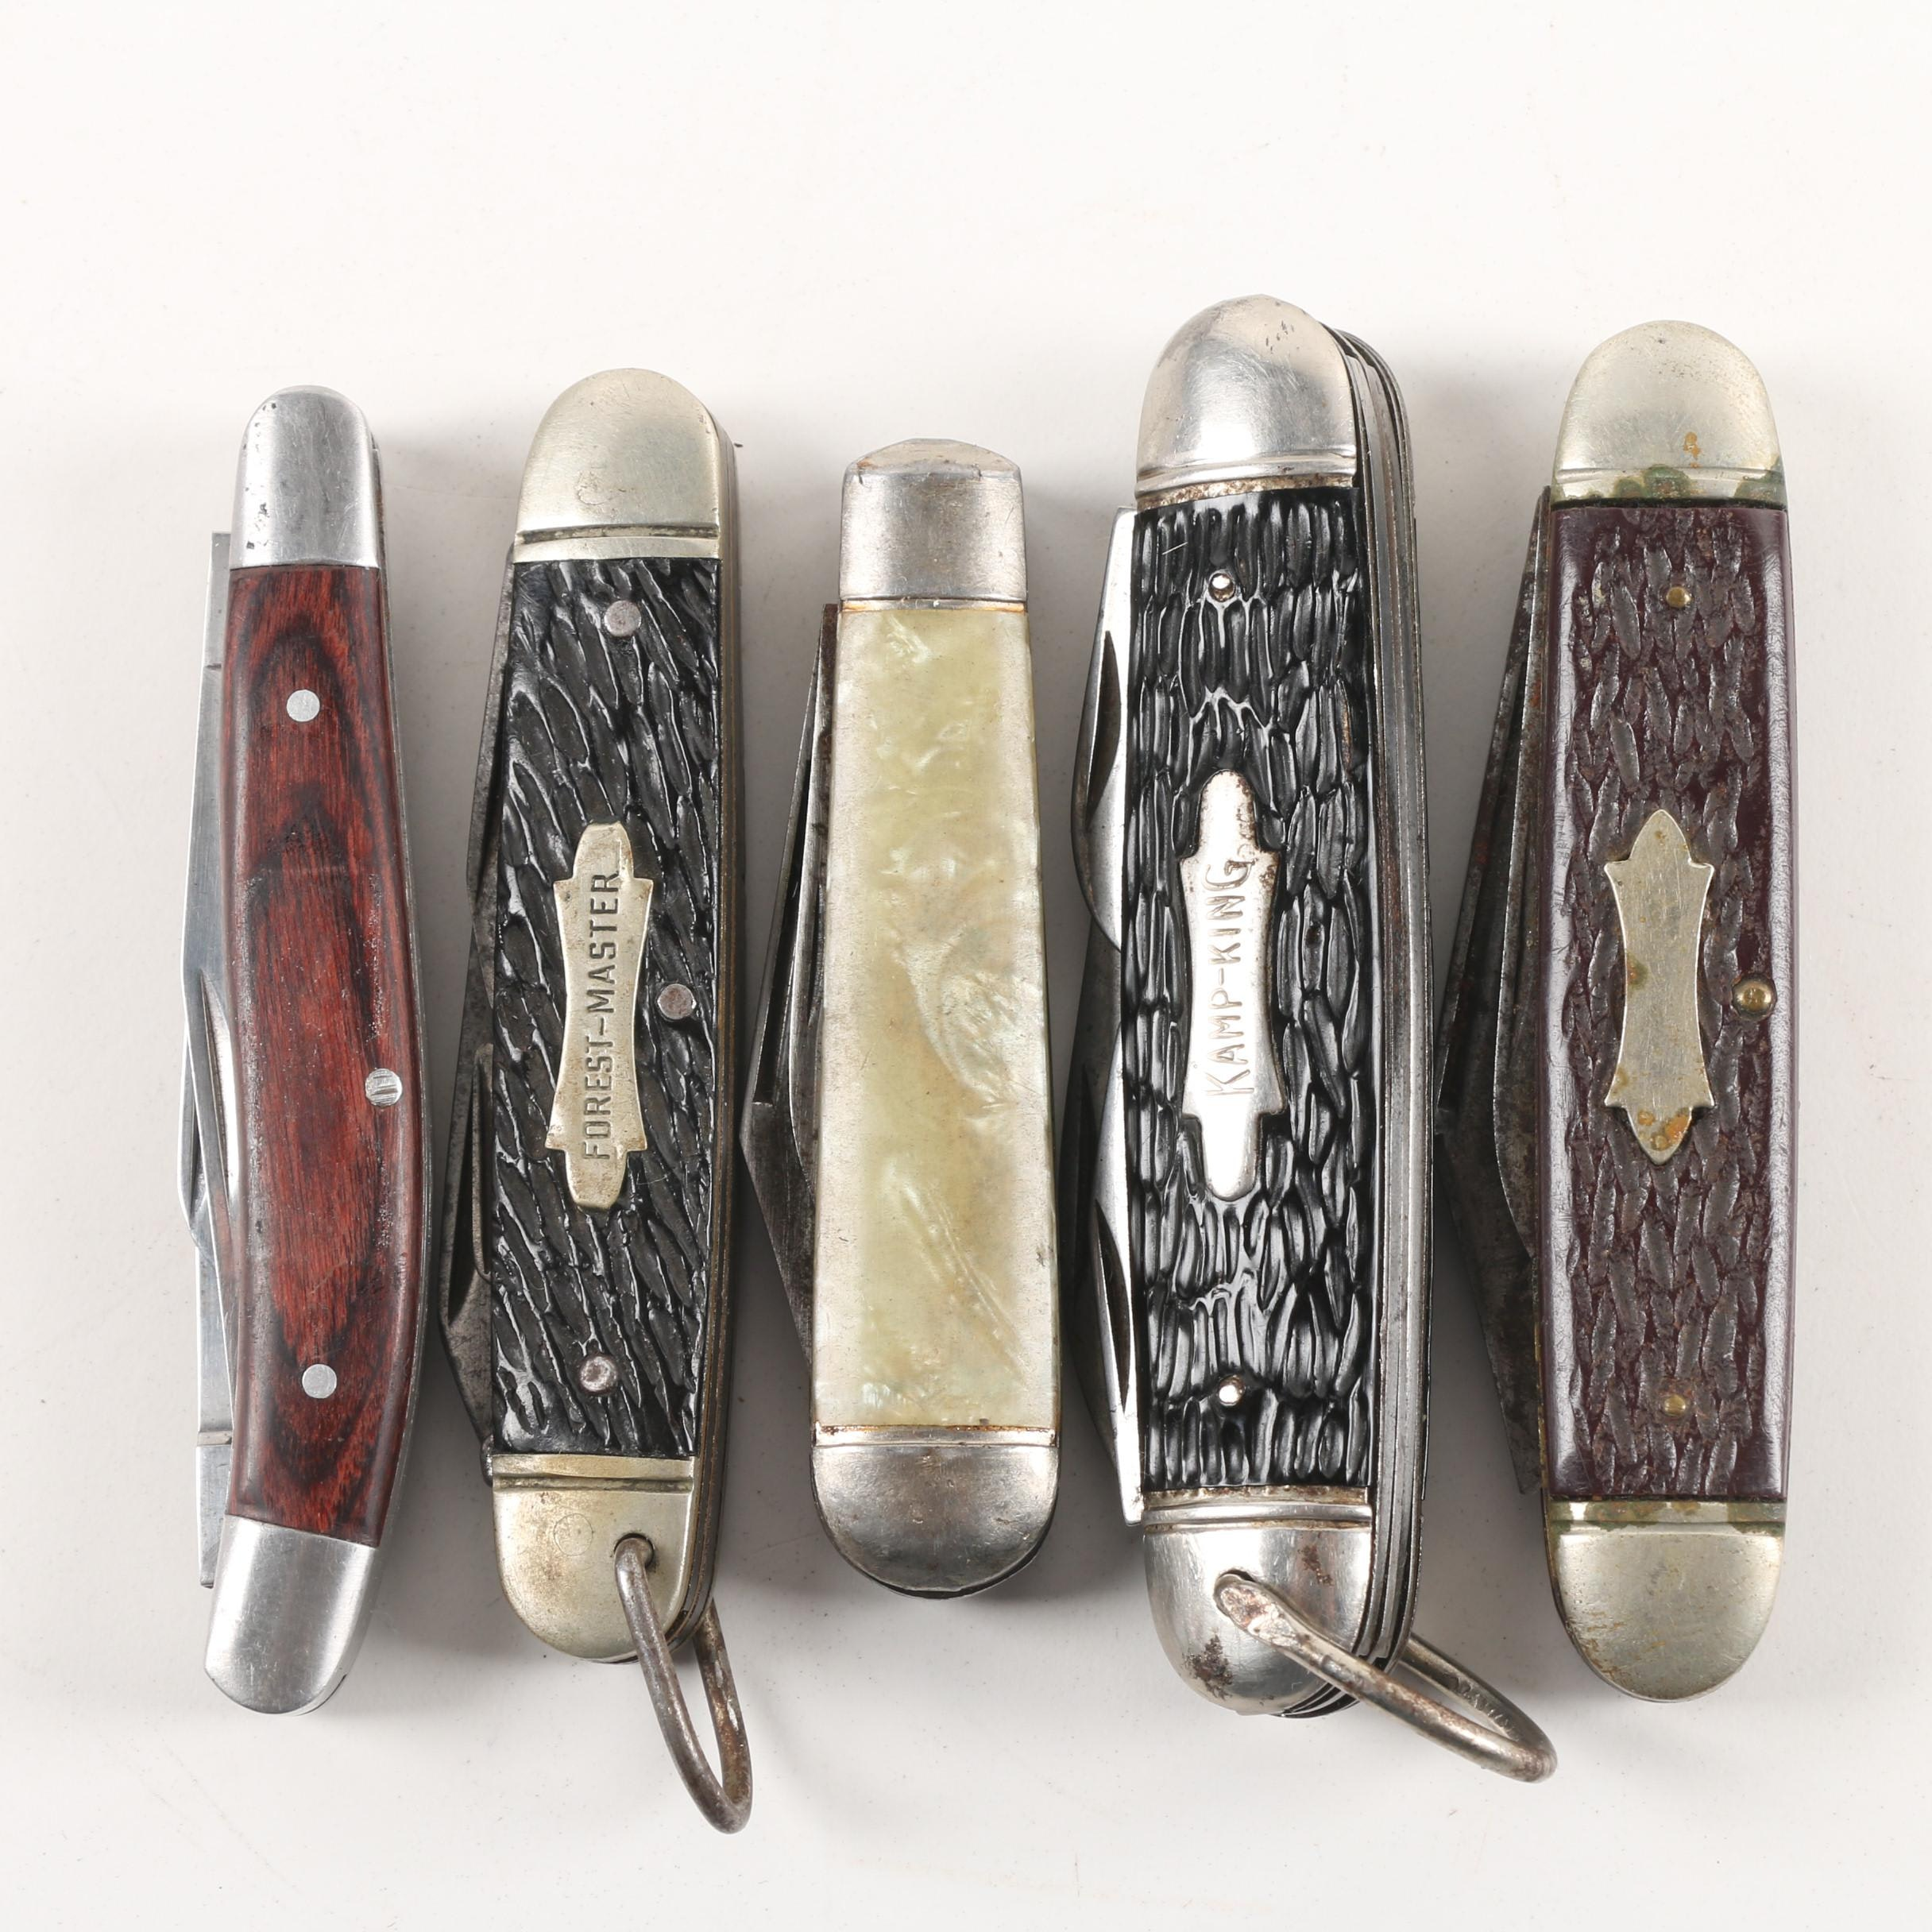 Forest-Master,  Winchester, Kamp-King and Other Pocket Knives